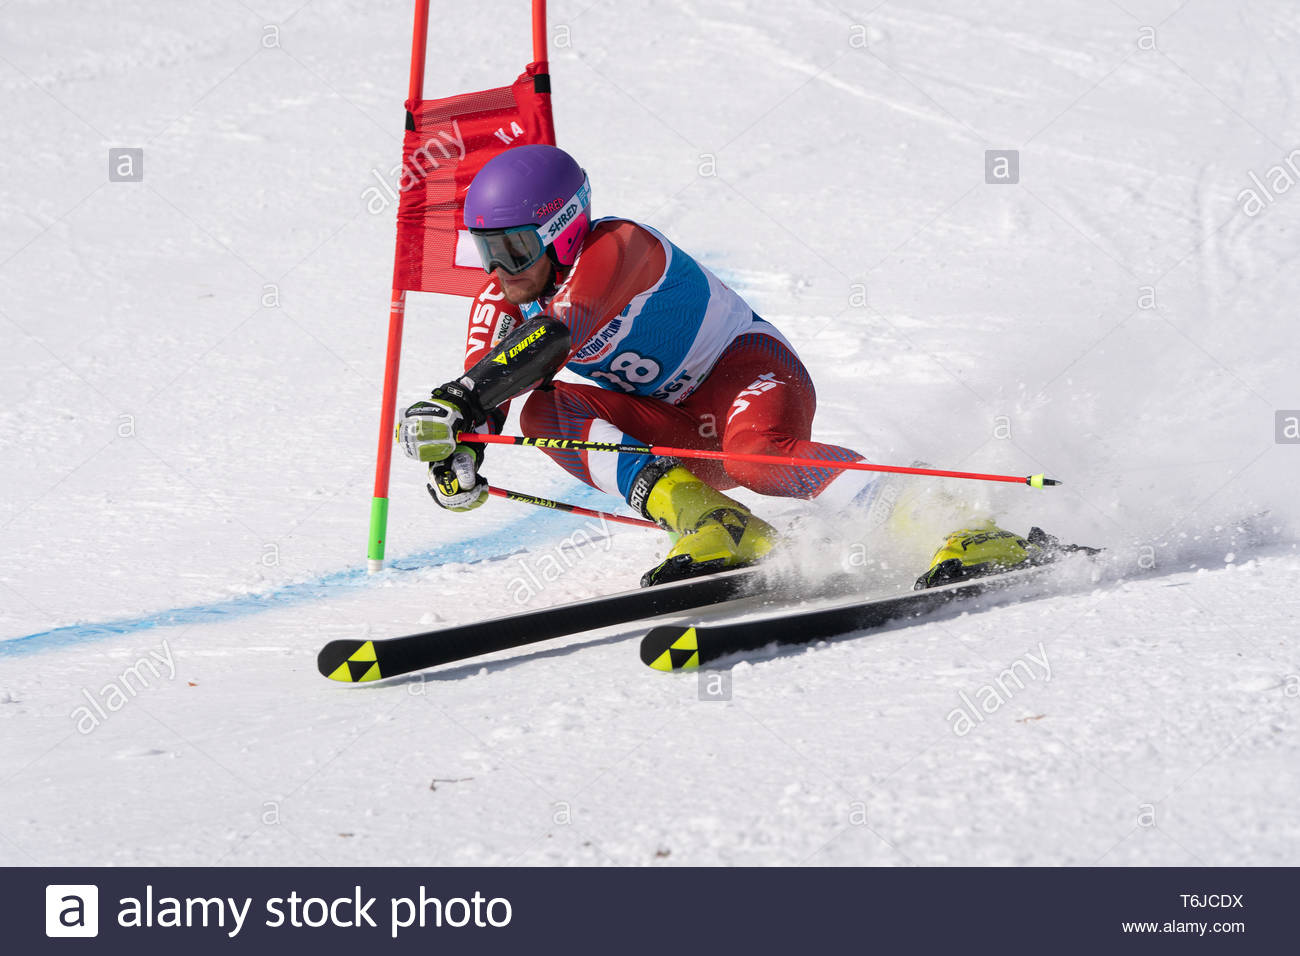 KAMCHATKA PENINSULA, RUSSIA - APR 1, 2019: Russian Alpine Skiing Cup, International Ski Federation (FIS) Championship - giant slalom. Mountain skier K - Stock Image